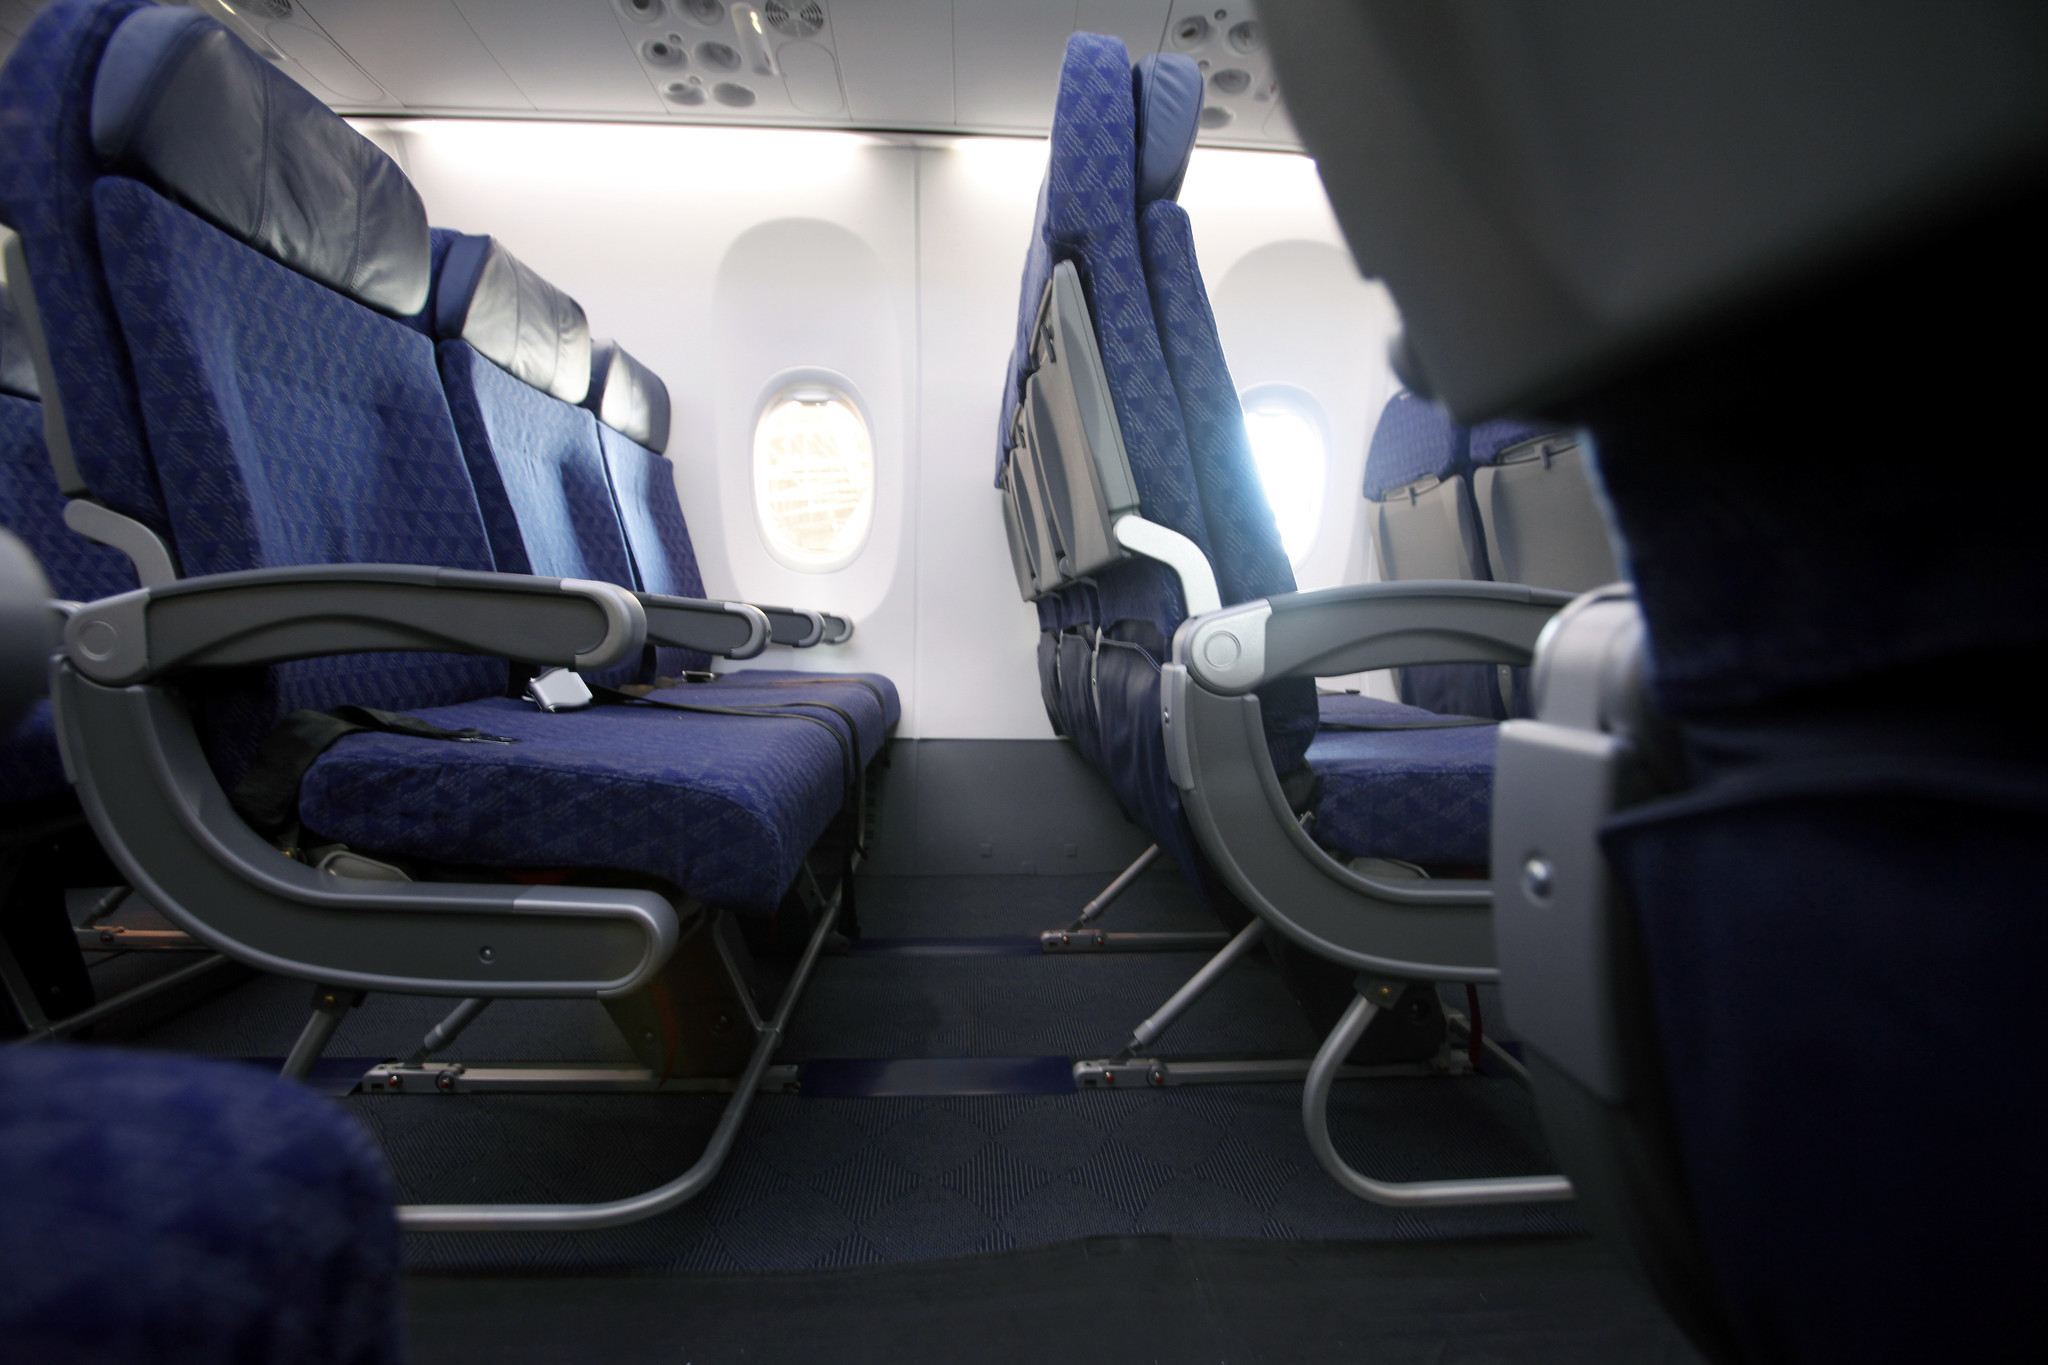 As Legroom On Planes Shrinks Is Passenger Safety